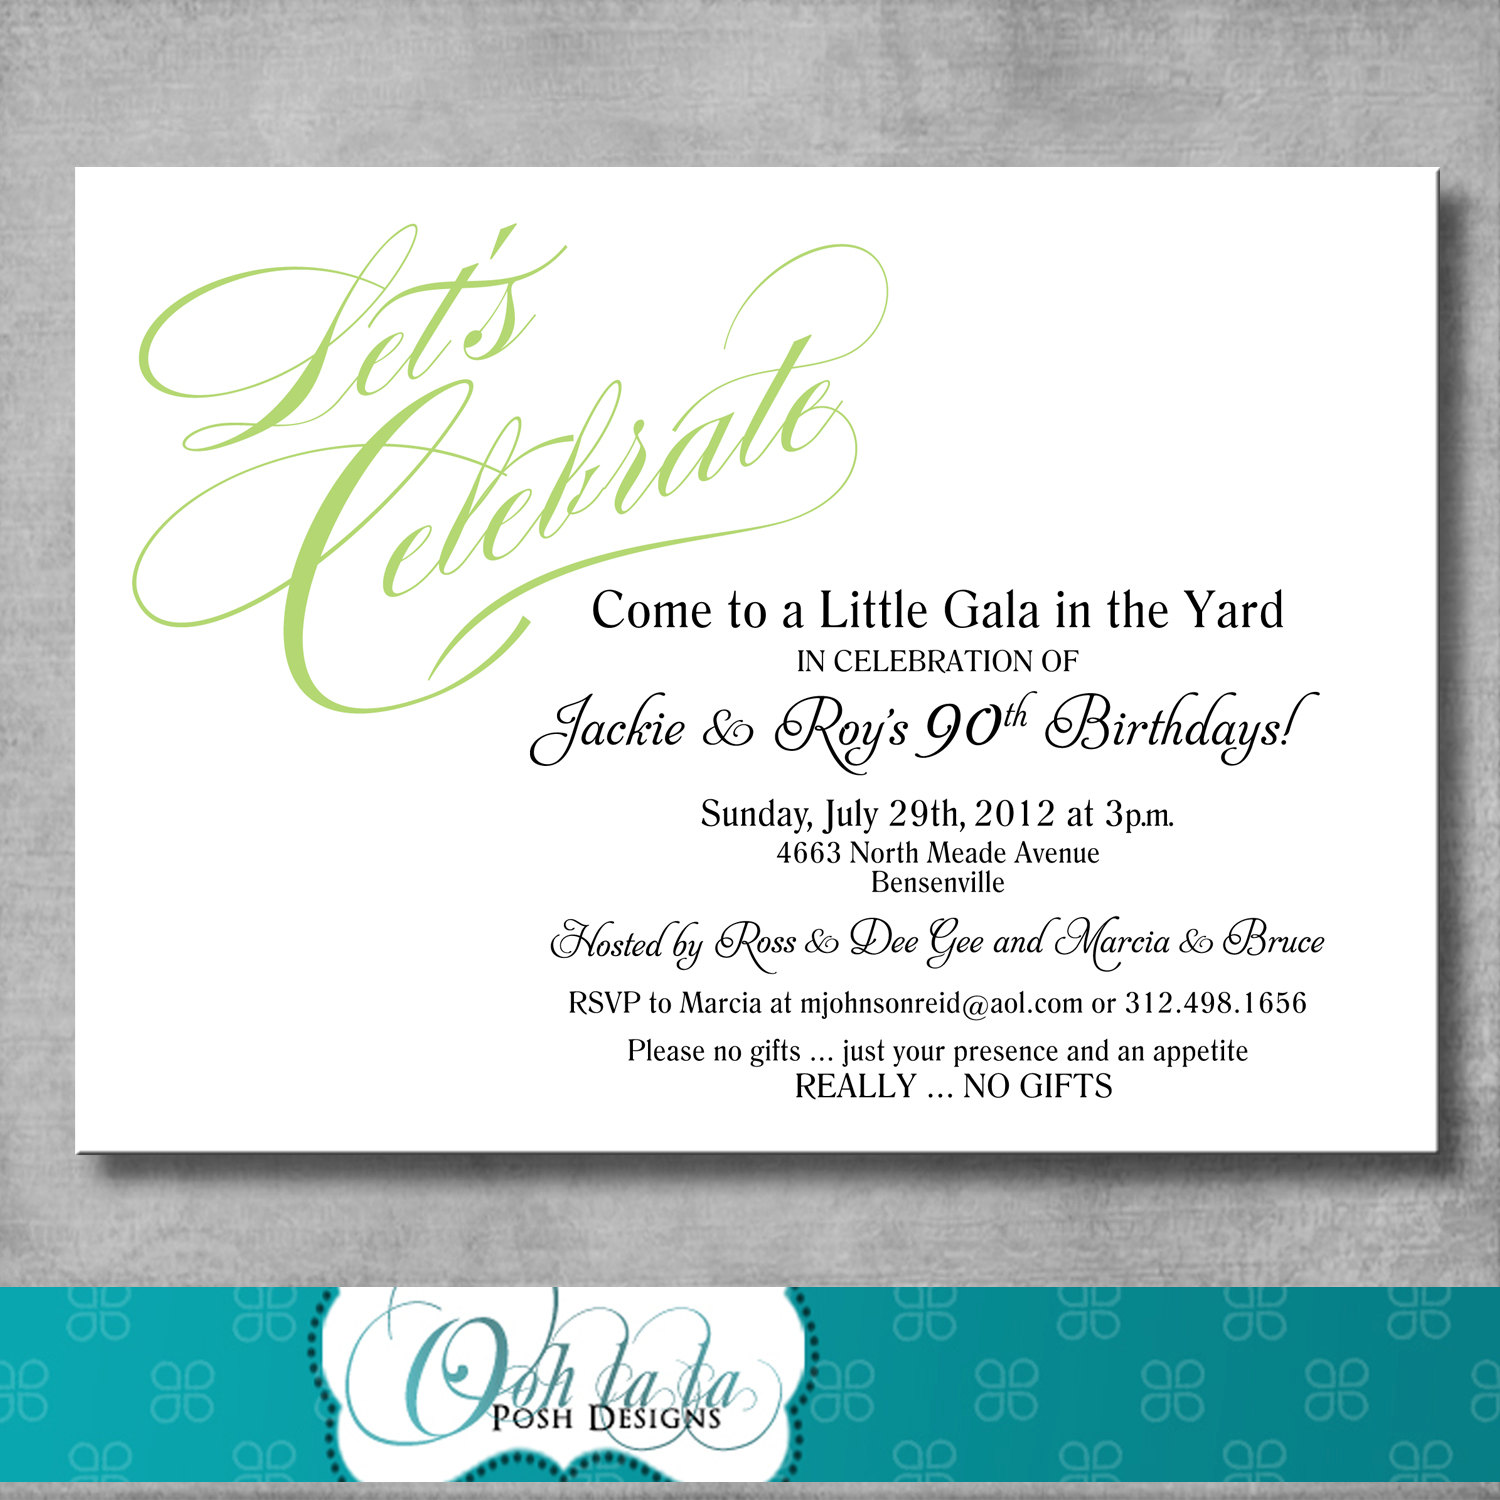 adults only birthday invitation wording ; wedding-invitation-wording-adults-only-best-of-birthday-invites-marvellous-adult-birthday-invitations-ideas-of-wedding-invitation-wording-adults-only